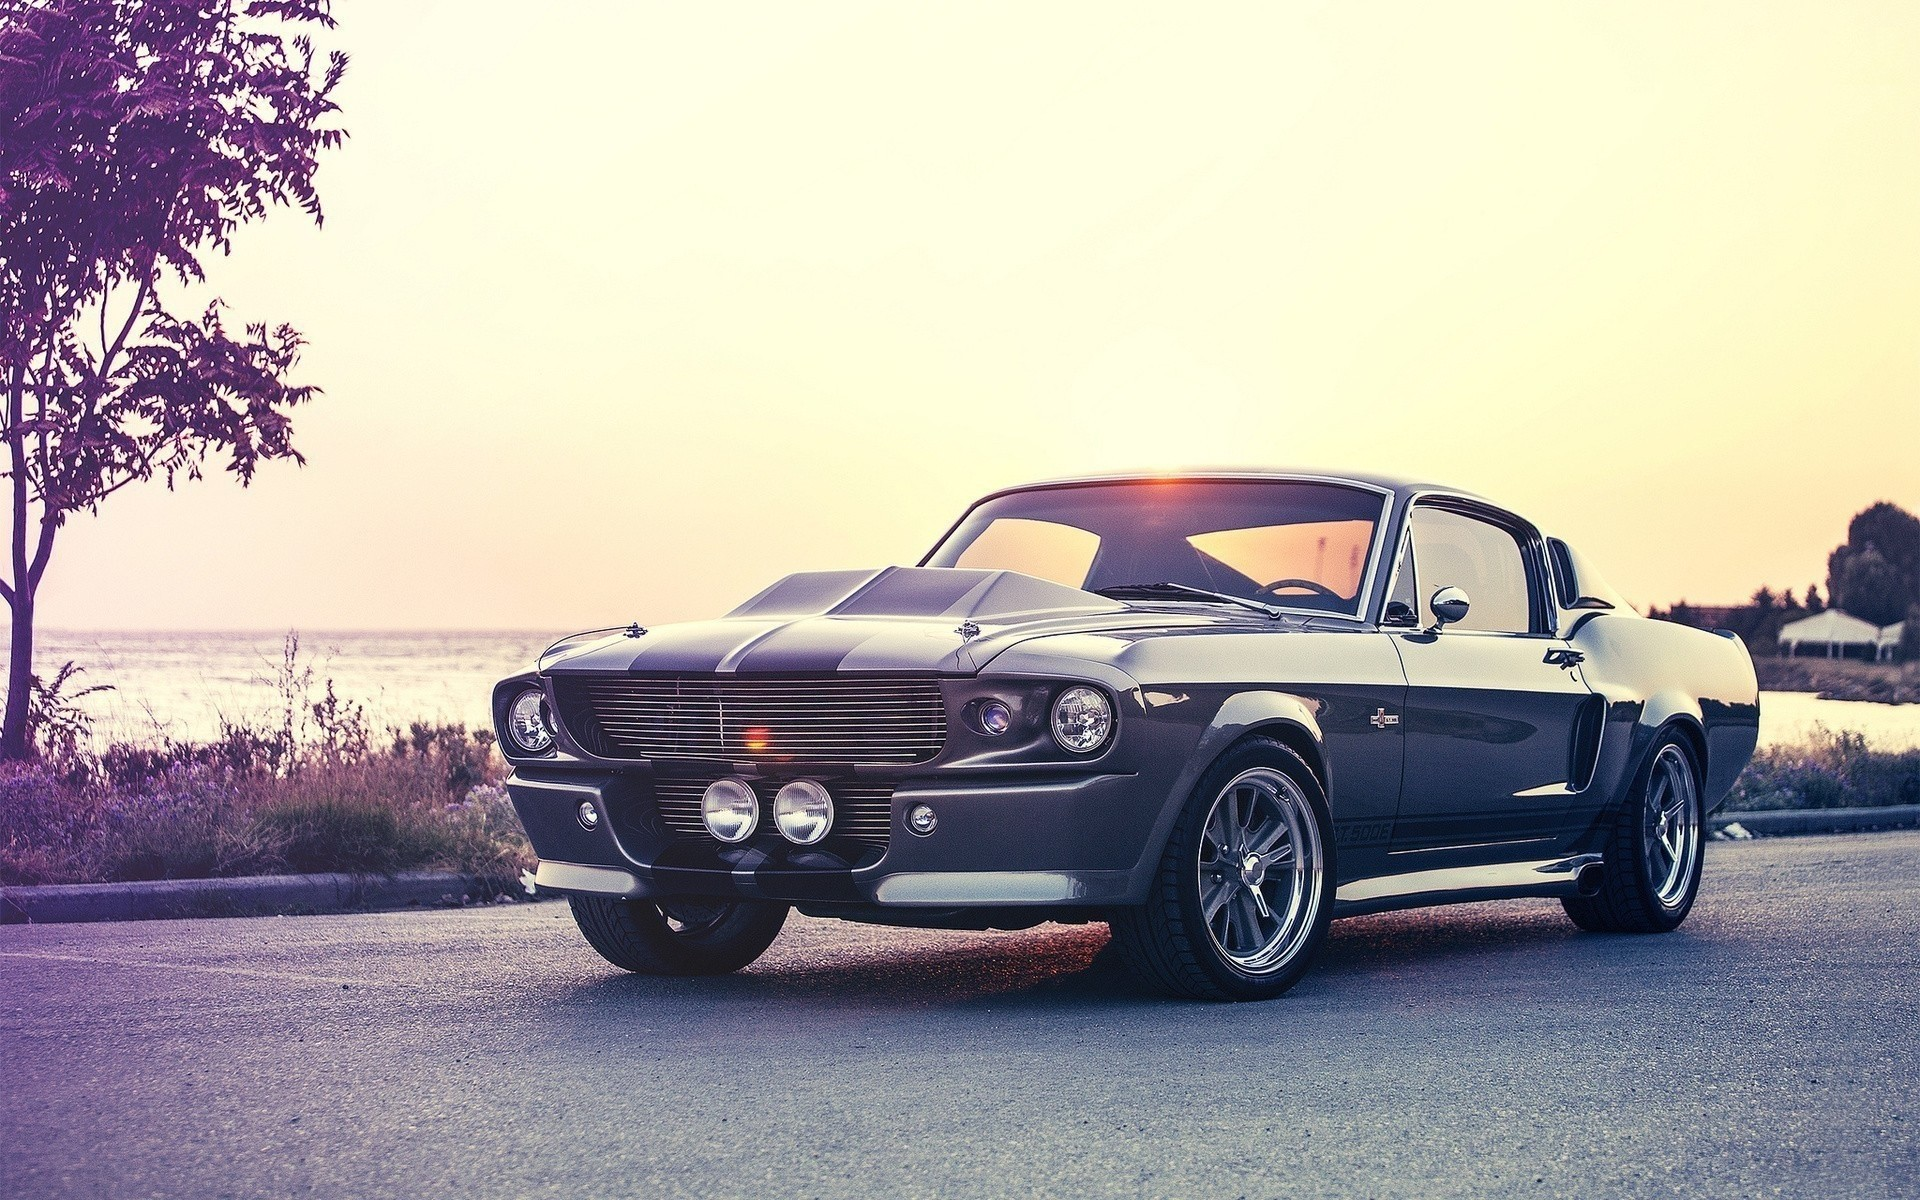 1967 Ford Mustang Shelby Cobra GT500 Eleanor Wallpaper.